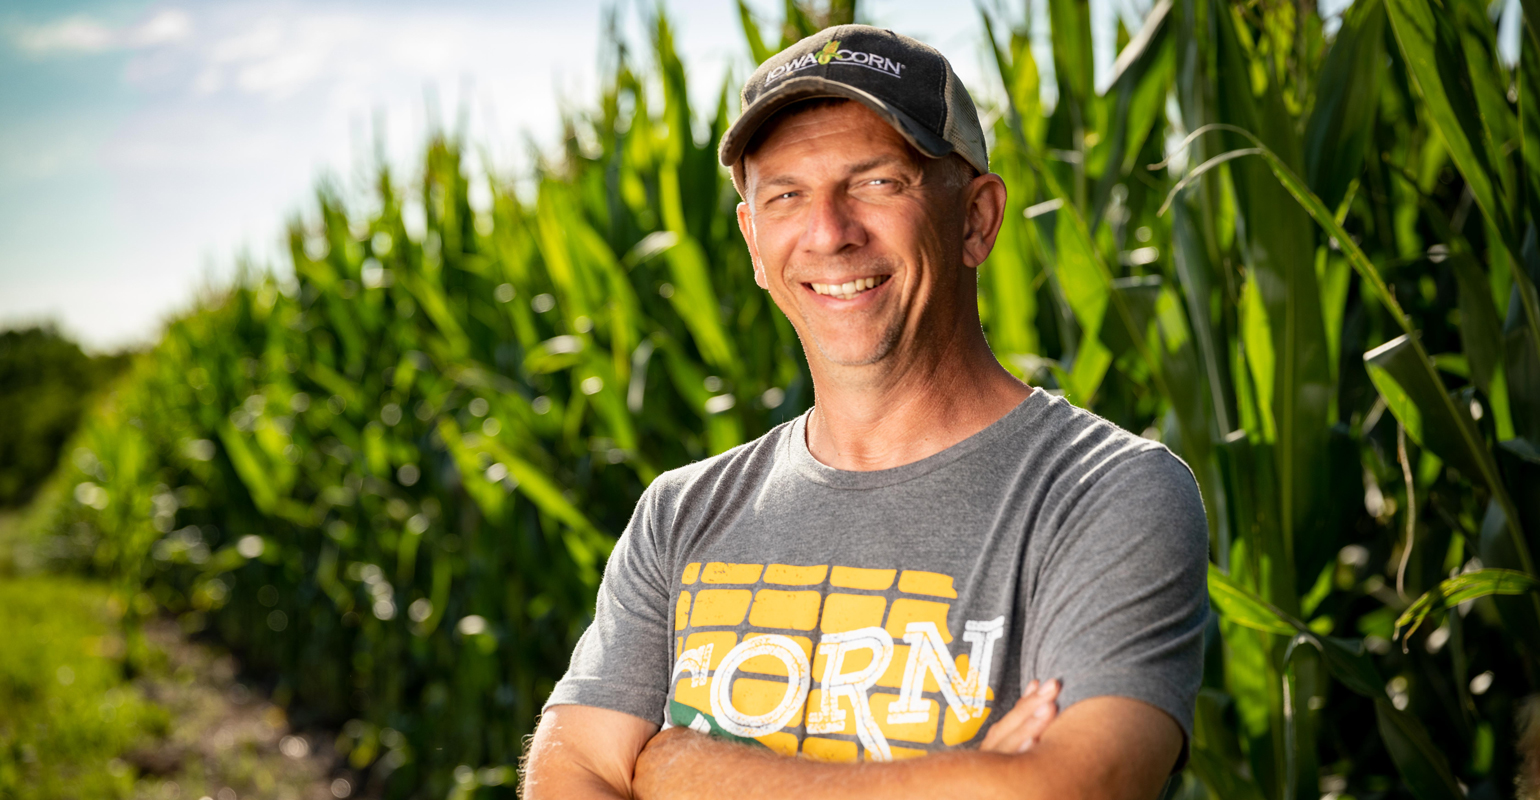 Man standing in front of corn field wearing T-shirt that says corn